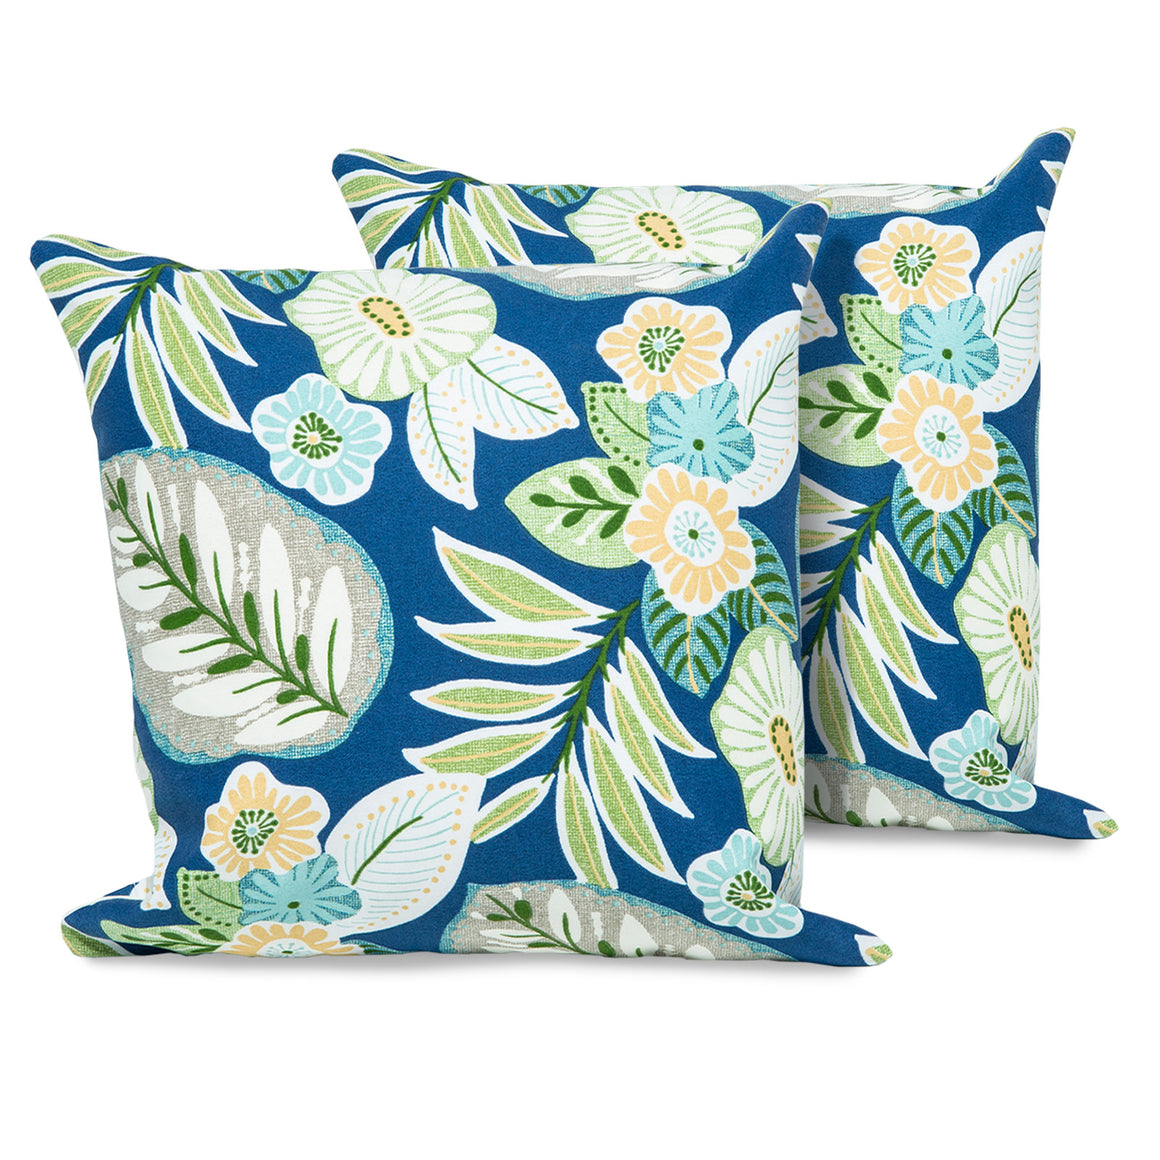 Blue Tropical Floral Outdoor Throw Pillows Square Set of 2 , TK Classics- grayburd